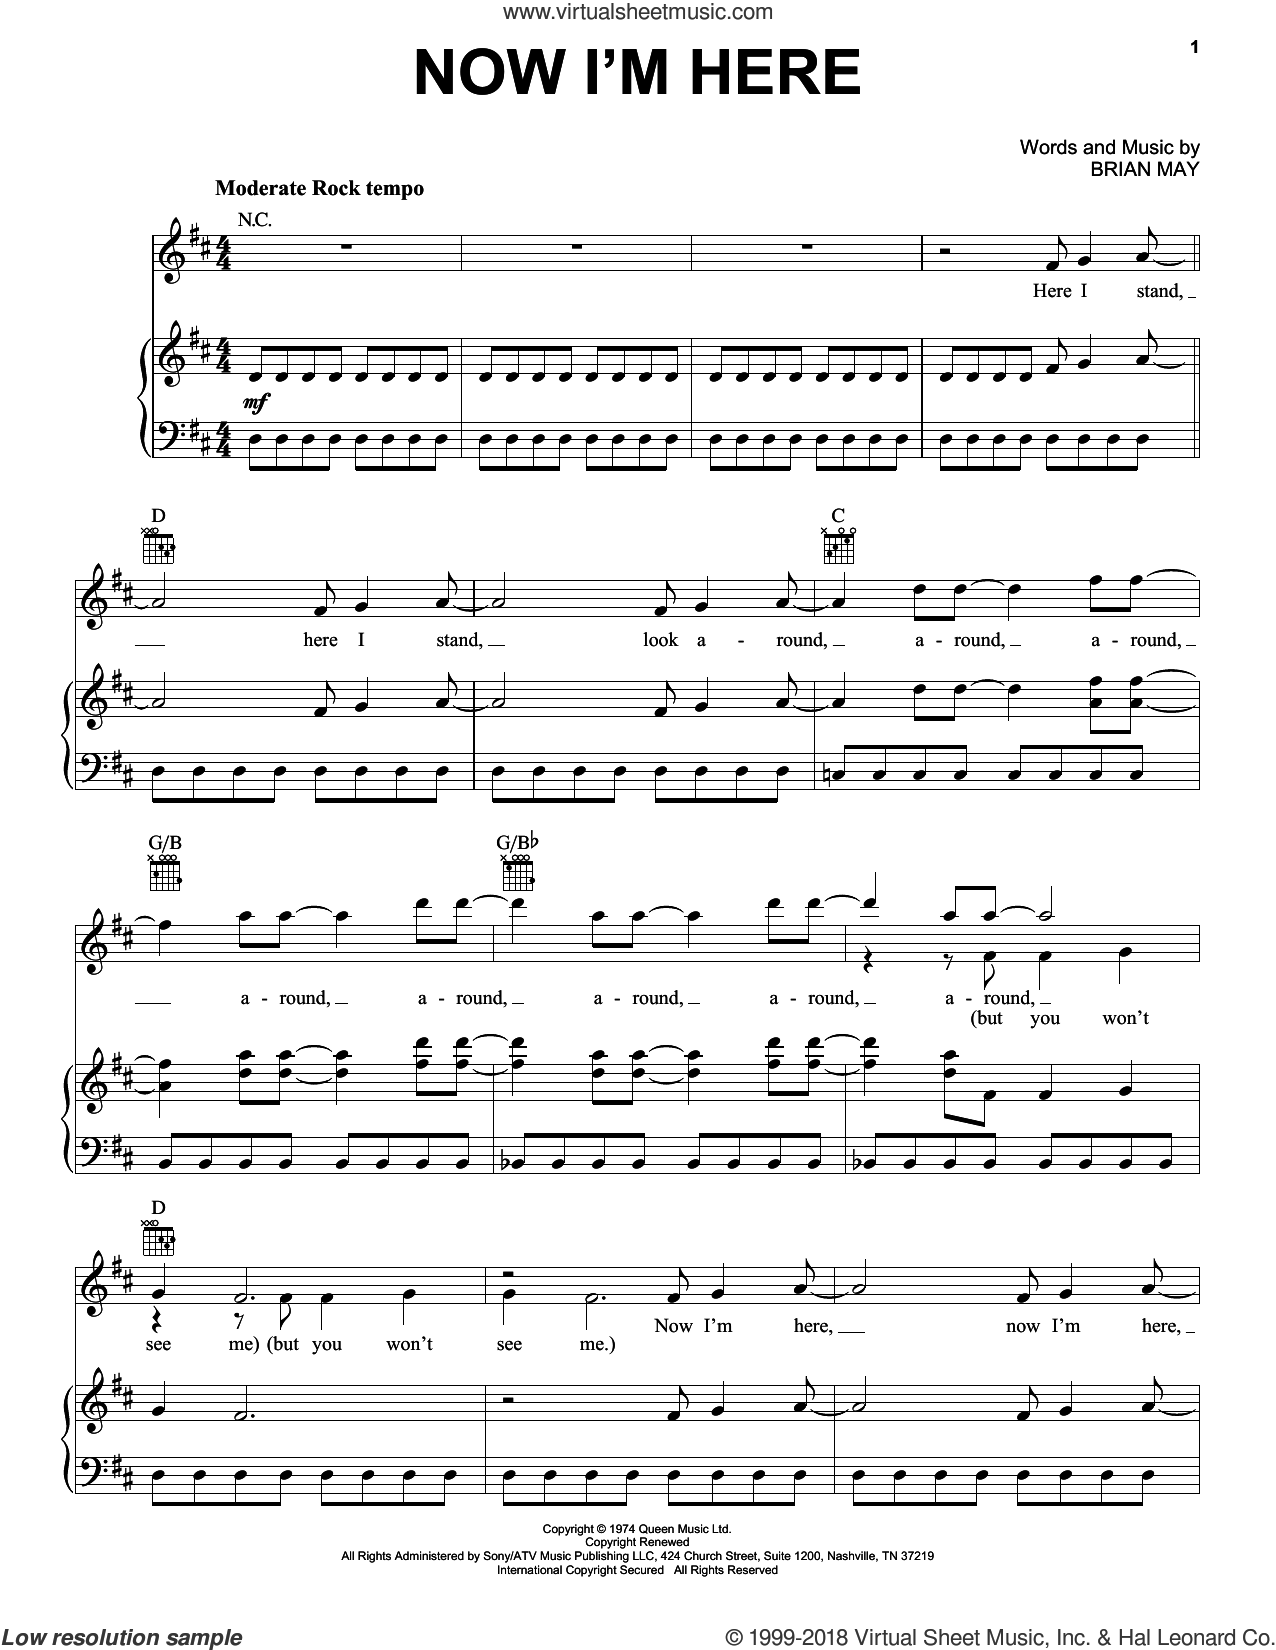 Now I'm Here sheet music for voice, piano or guitar by Queen and Brian May, intermediate skill level